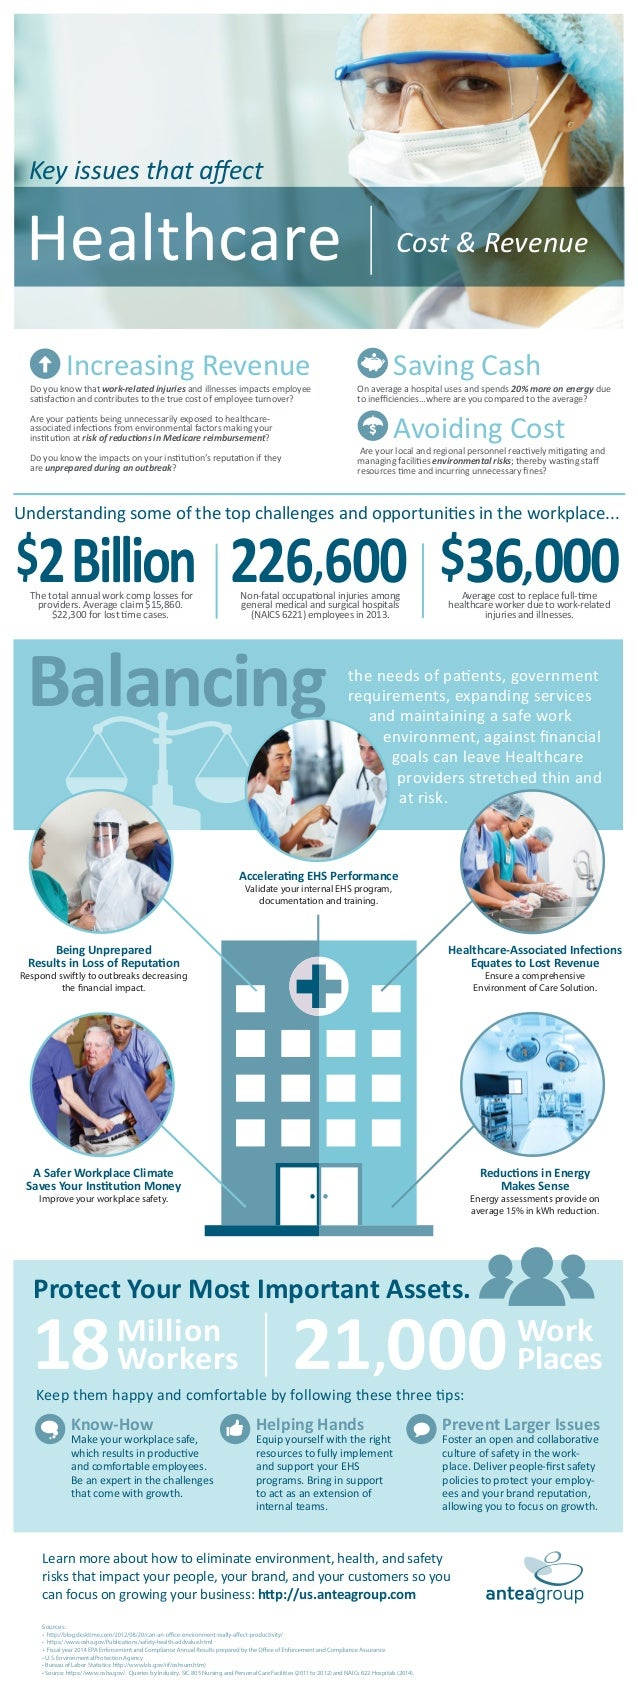 Balancing Healthcare the needs of patients, government requirements, expanding services and maintaining a safe work enviro...